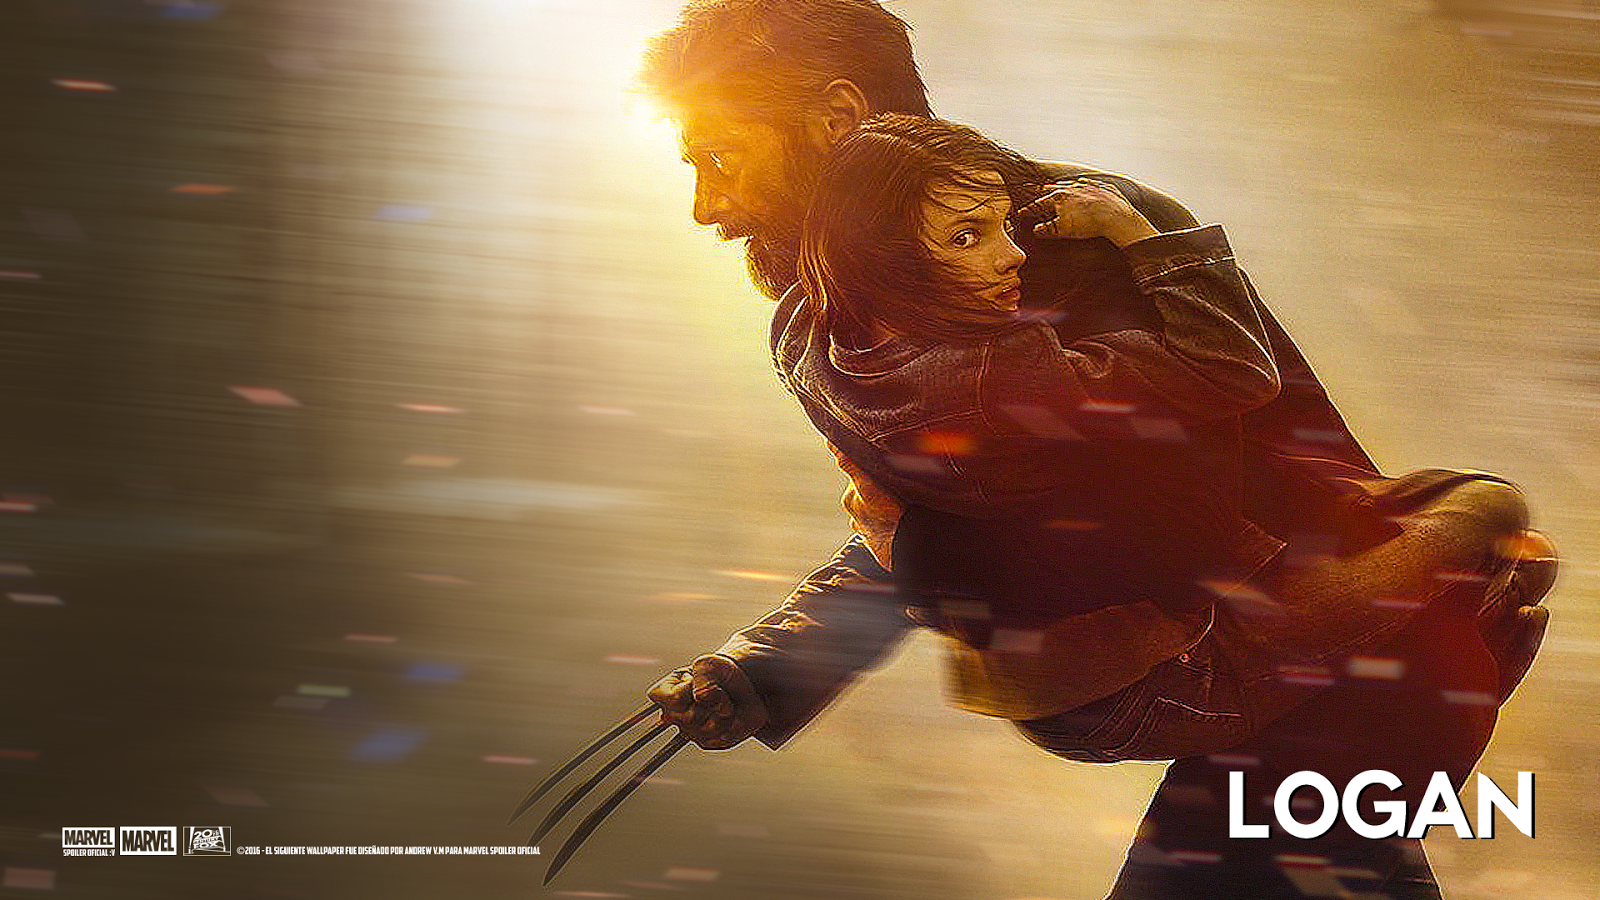 Logan 2017 Movie Hd Wallpaper: Marvel Spoiler Oficial: Nuevo Wallpaper De Logan 2017